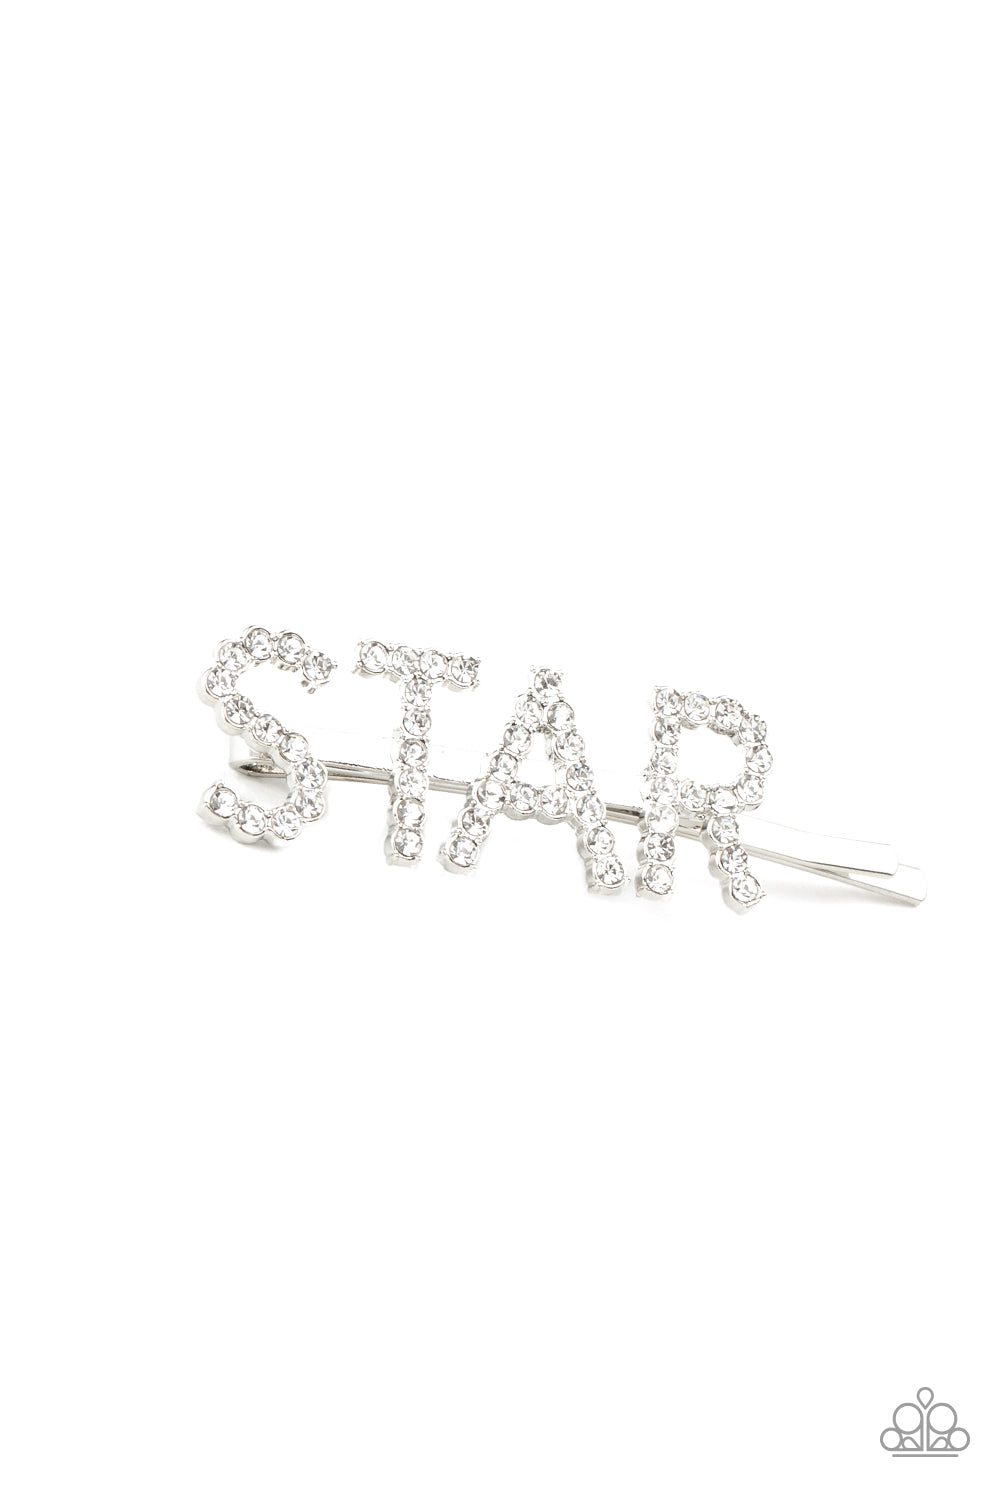 Paparazzi Jewelry & Accessories - Star In Your Own Show - White Hair Clip. Bling By Titia Boutique